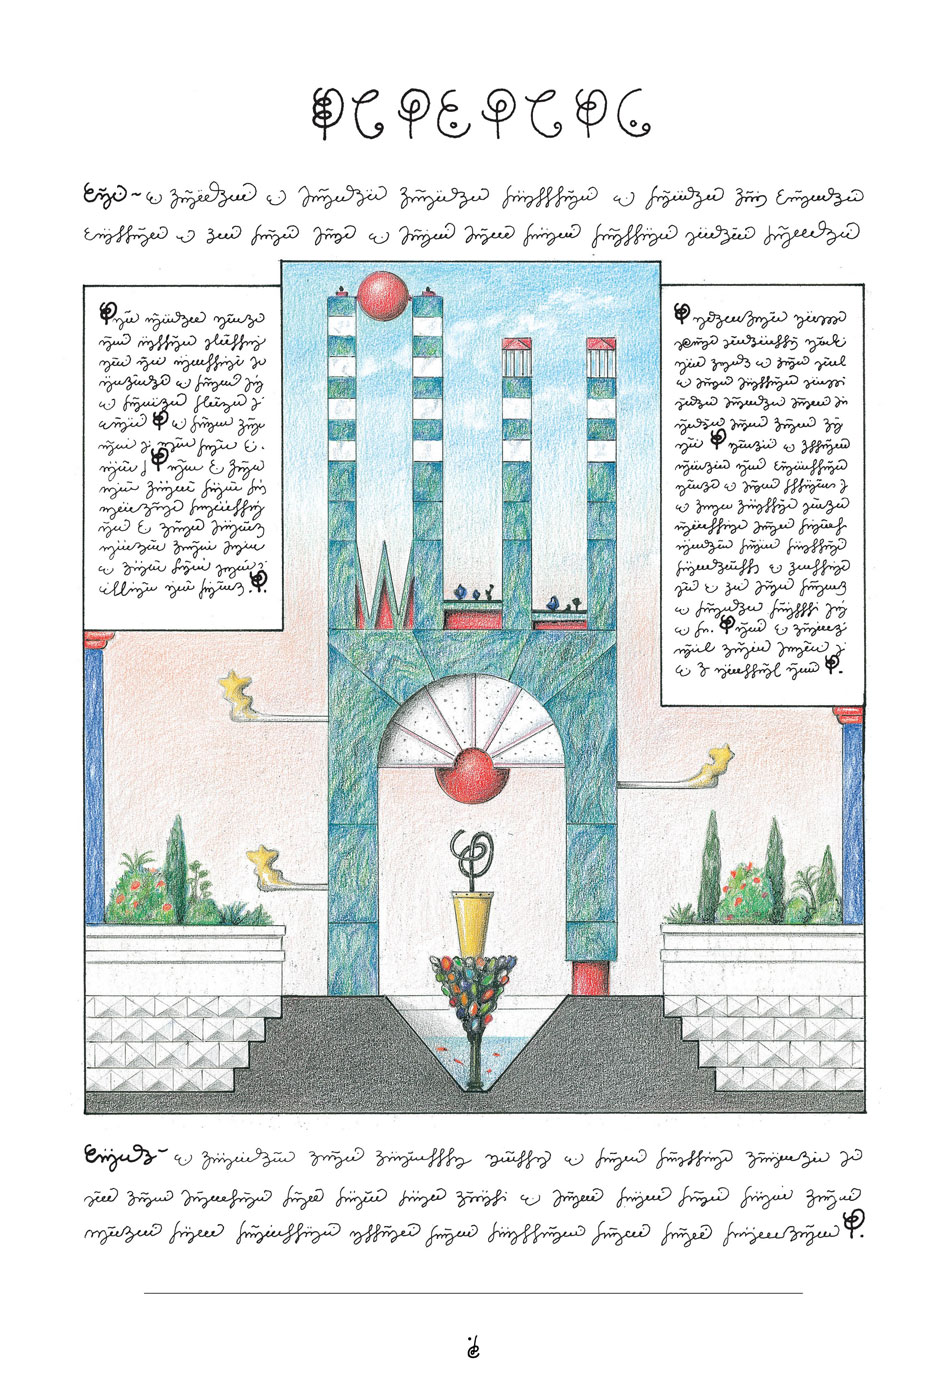 Codex Seraphinianus Art From Codex Seraphinianus by